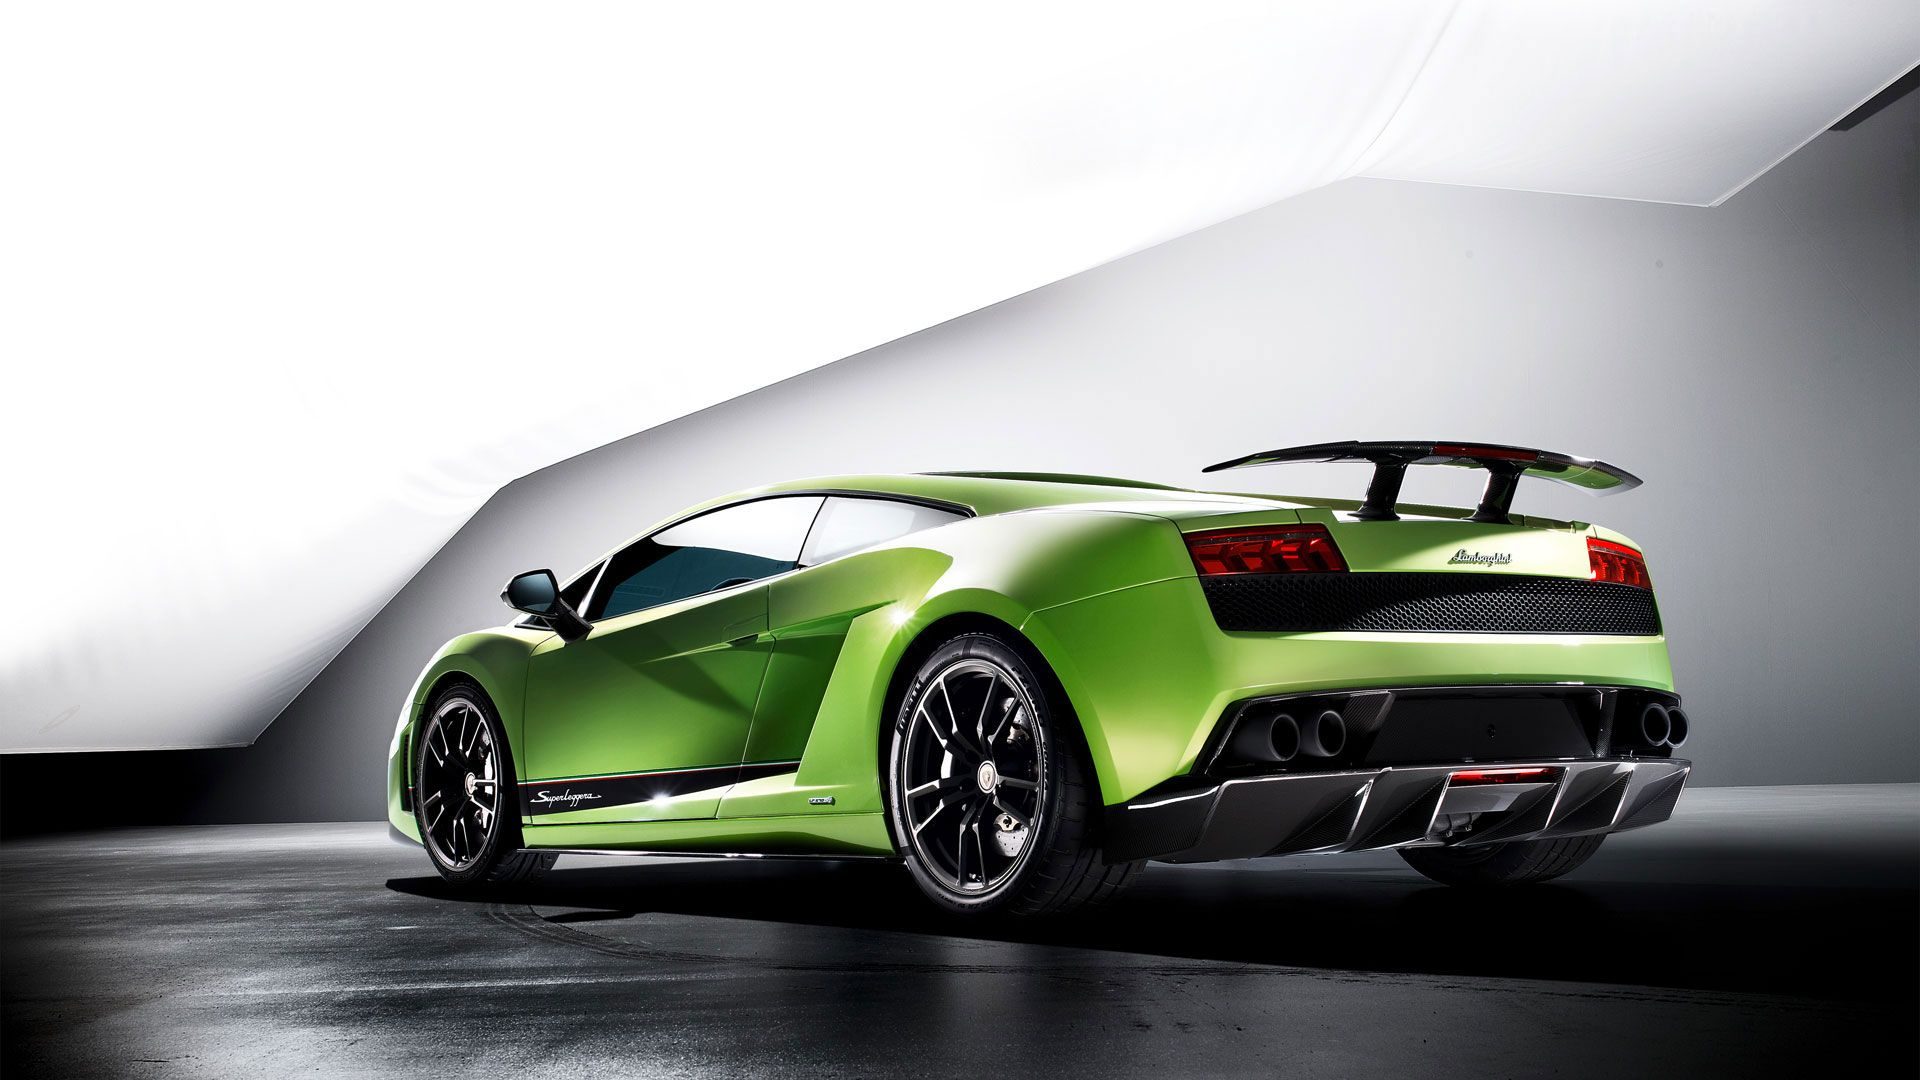 Wallpaper Area Green Lamborghini Gallardo HD